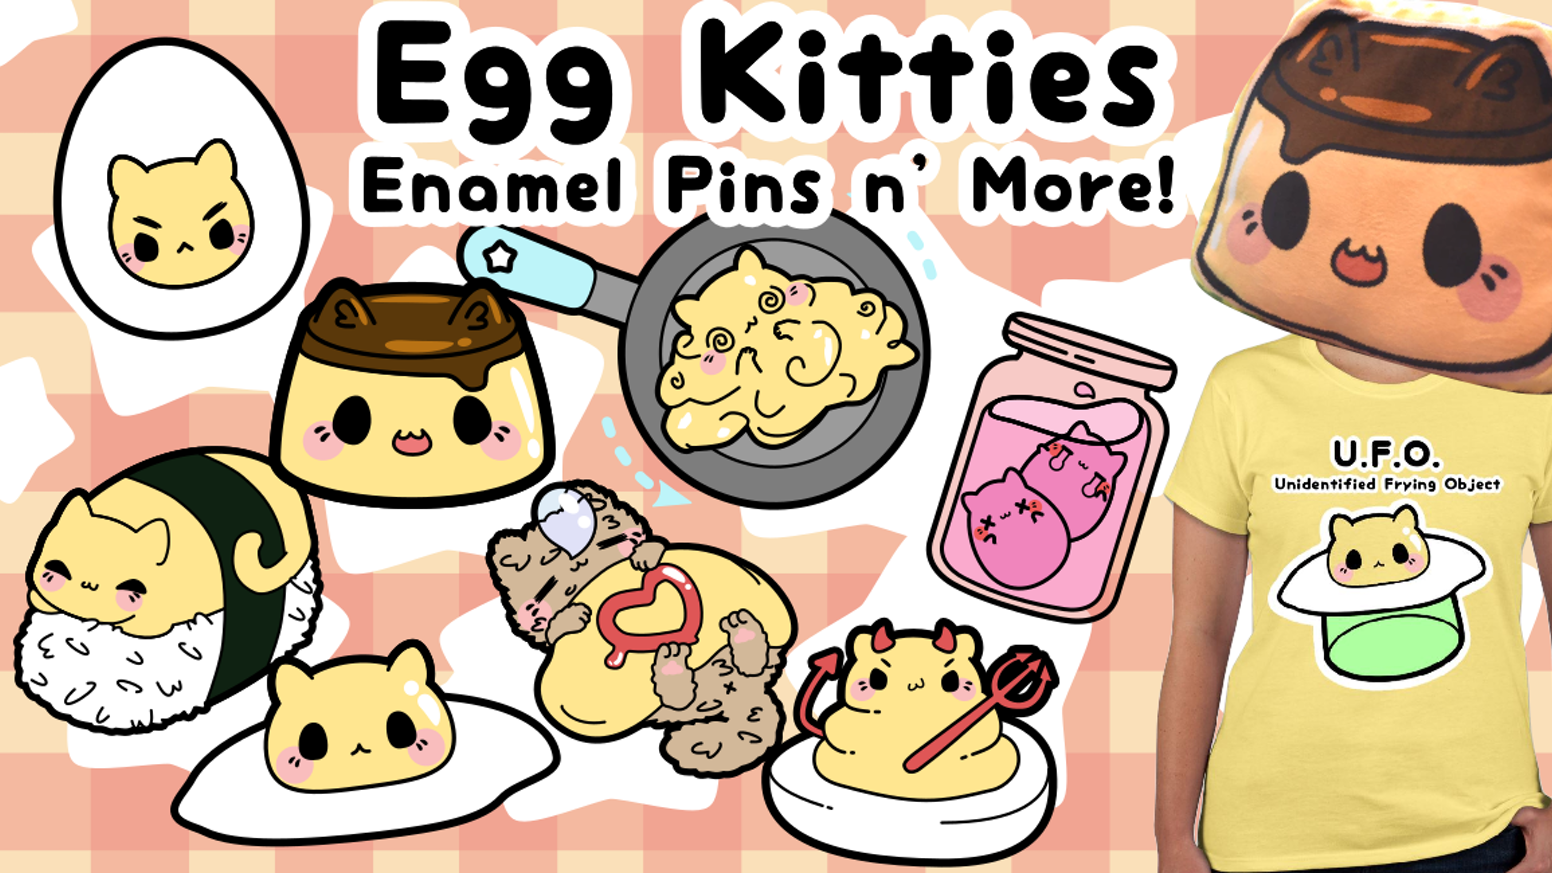 Egg Kitties Enamel Pins and More -- Designed by Kittynaut